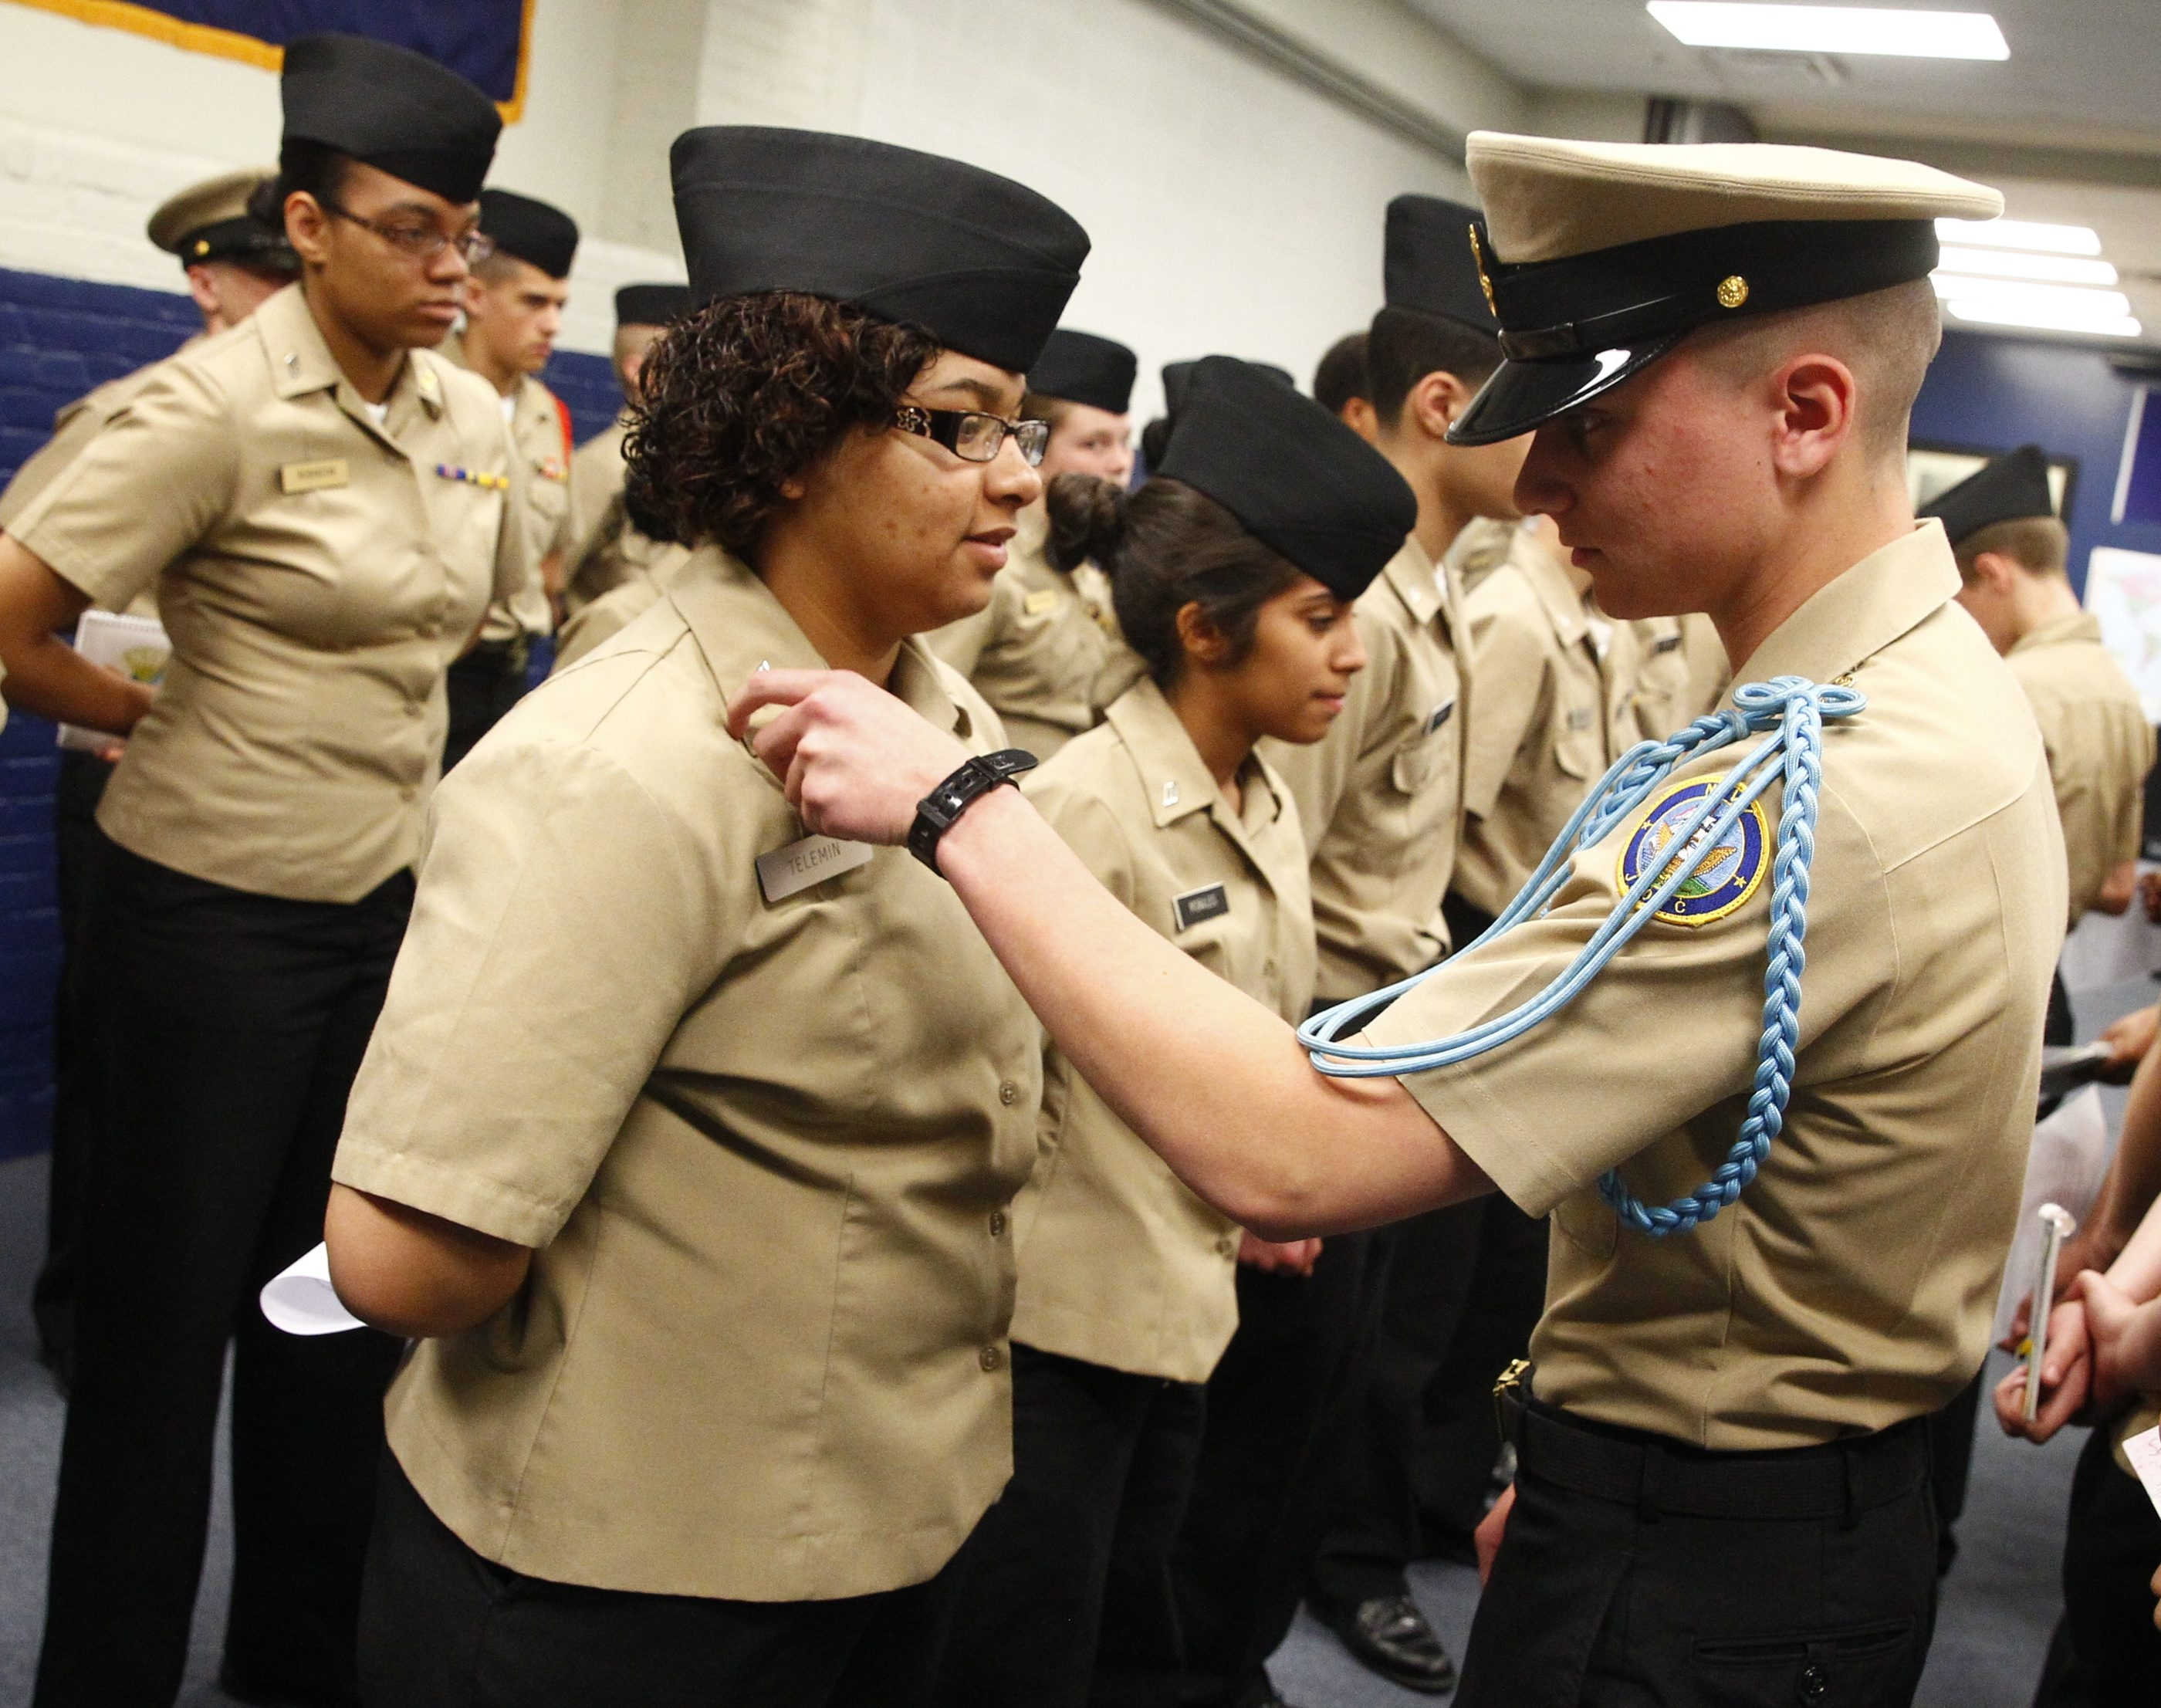 Western New York Maritime Charter School Cadets participate in full uniform inspection at the start of every class on Wednesday's, here  Chief Petty Officer Claudio Benavides, right,  inspects a Cadet at Maritime Charter School in Buffalo, N.Y., on Wednesday, May 6, 2015.  (John Hickey/Buffalo News)